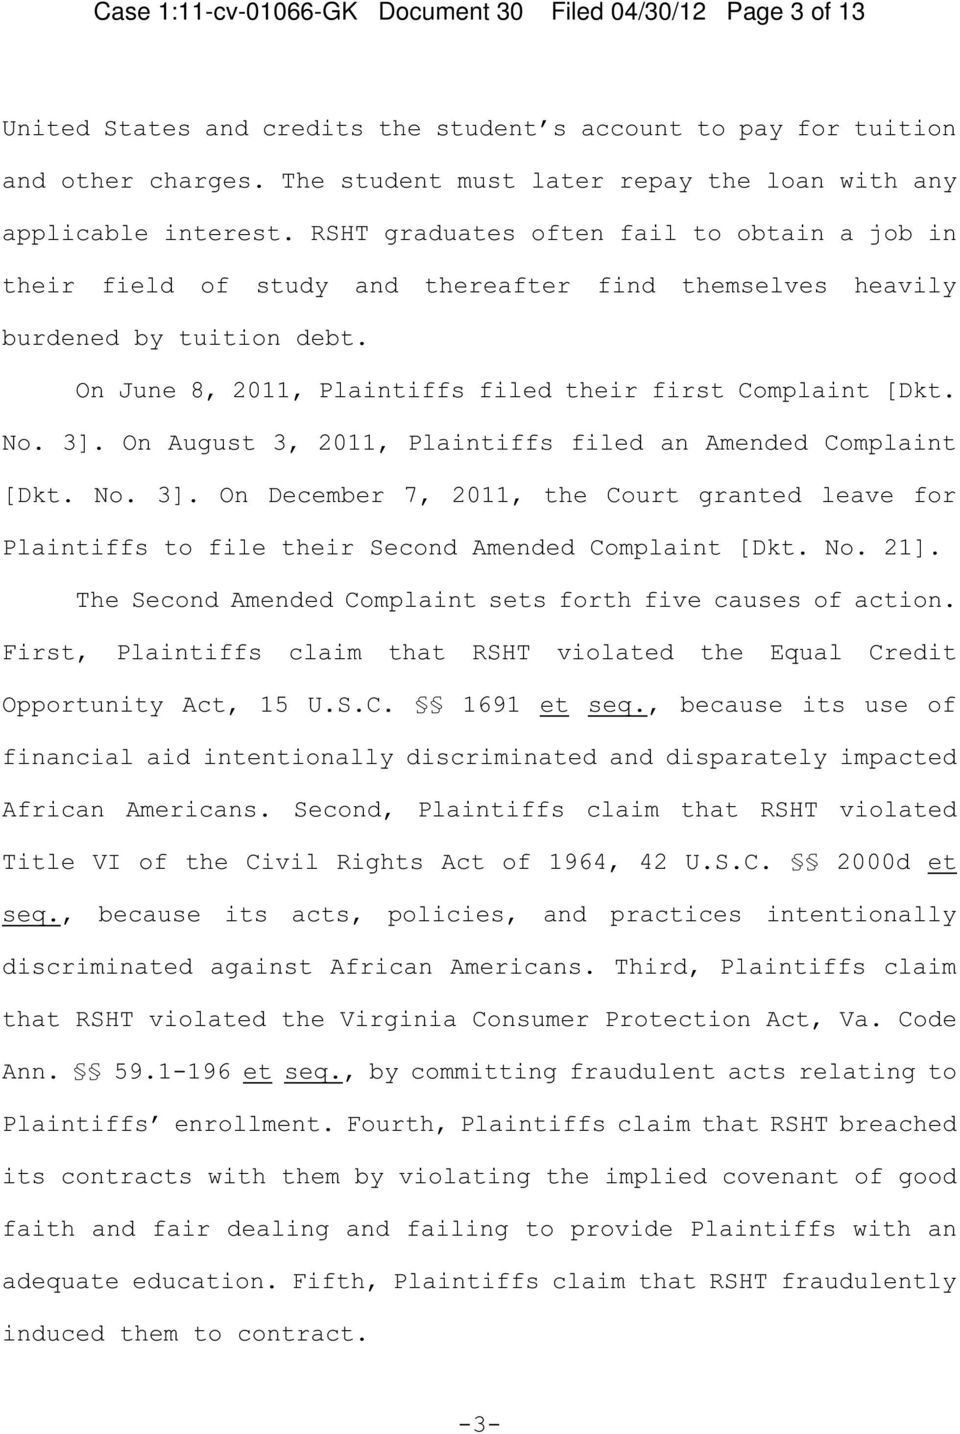 On June 8, 2011, Plaintiffs filed their first Complaint [Dkt. No. 3]. On August 3, 2011, Plaintiffs filed an Amended Complaint [Dkt. No. 3]. On December 7, 2011, the Court granted leave for Plaintiffs to file their Second Amended Complaint [Dkt.